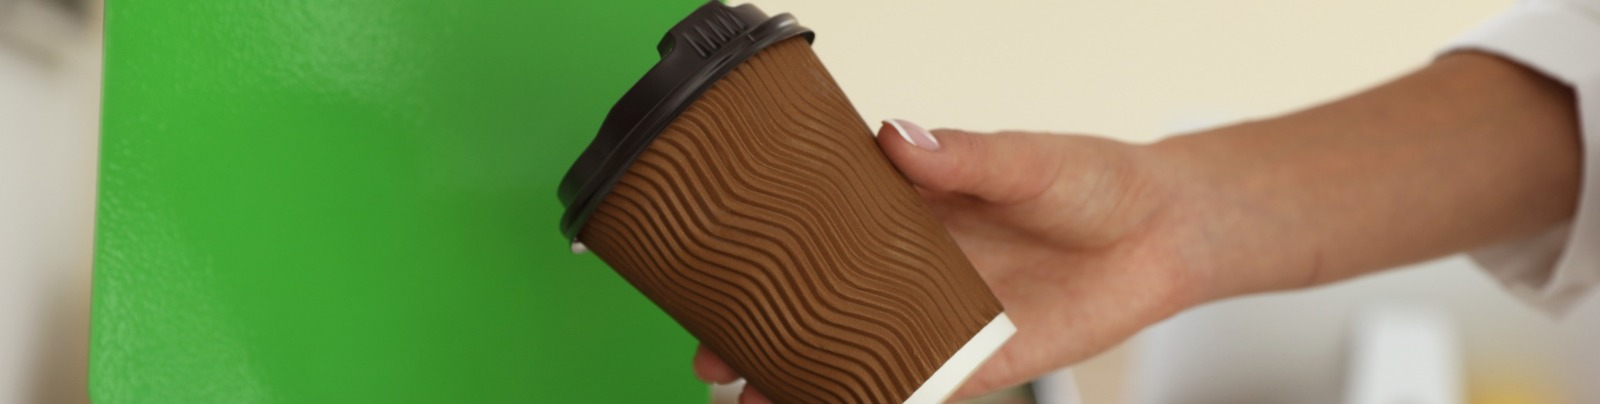 National paper cup recycling scheme